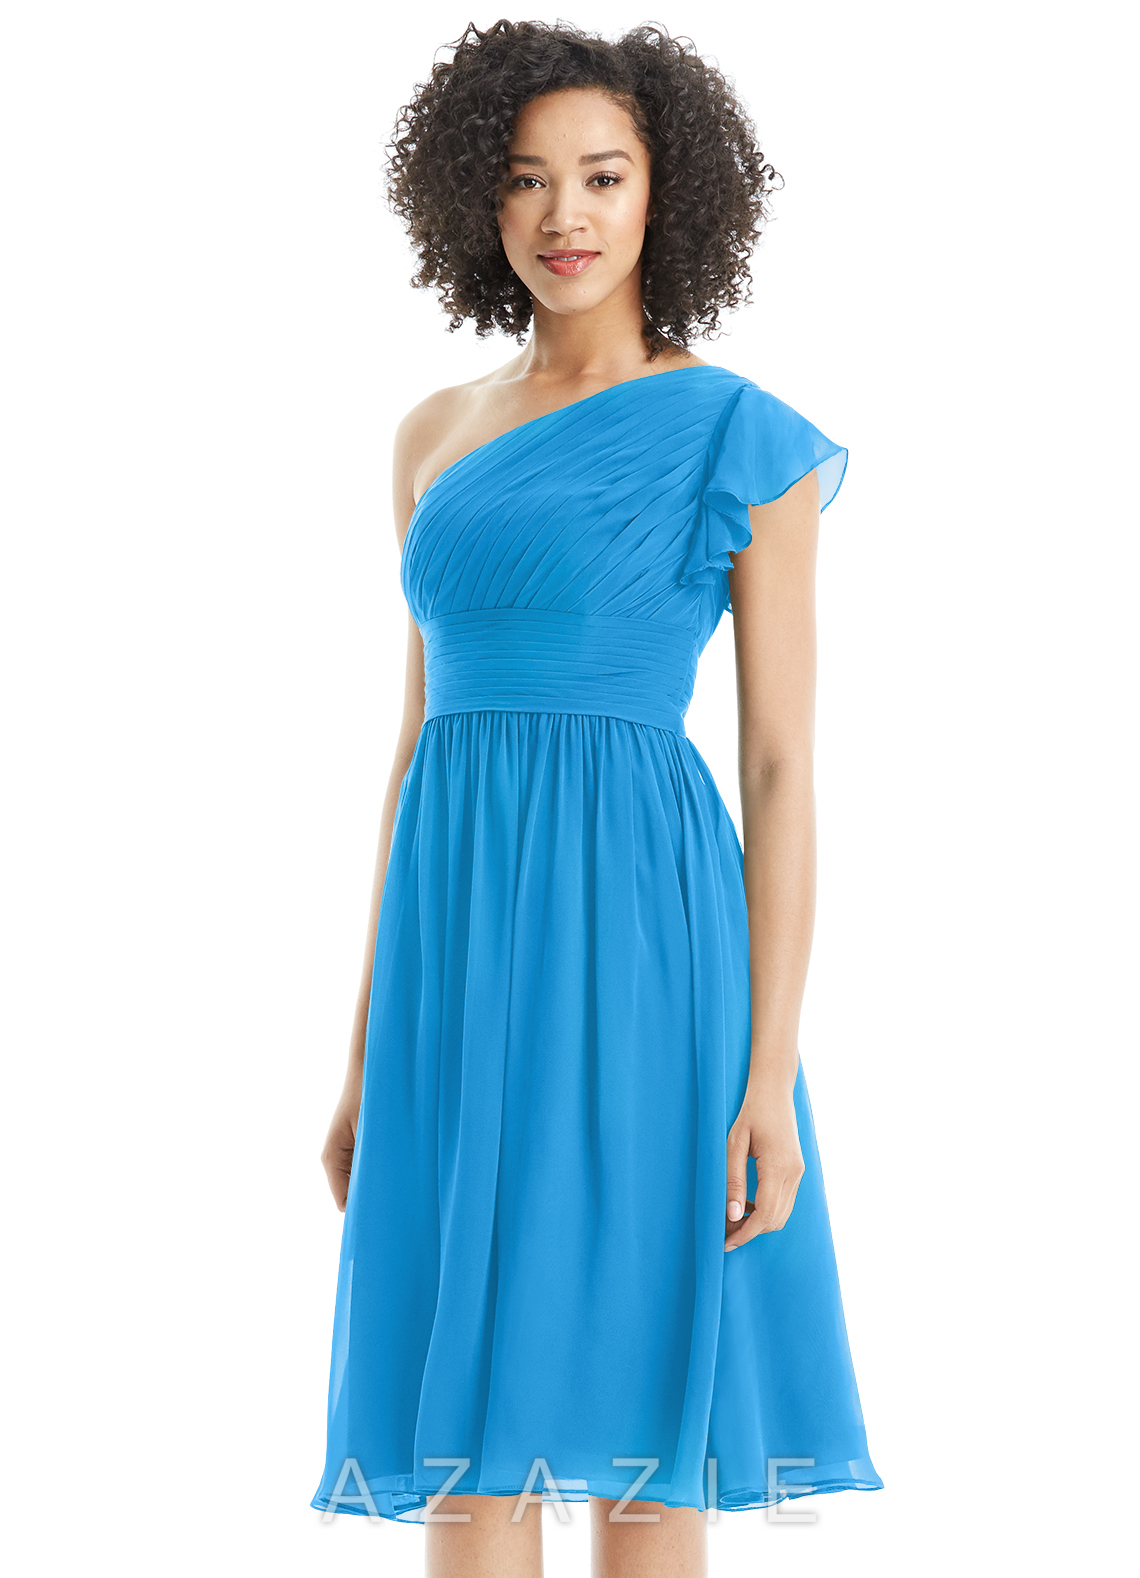 Azazie carly bridesmaid dress azazie color ocean blue ombrellifo Choice Image